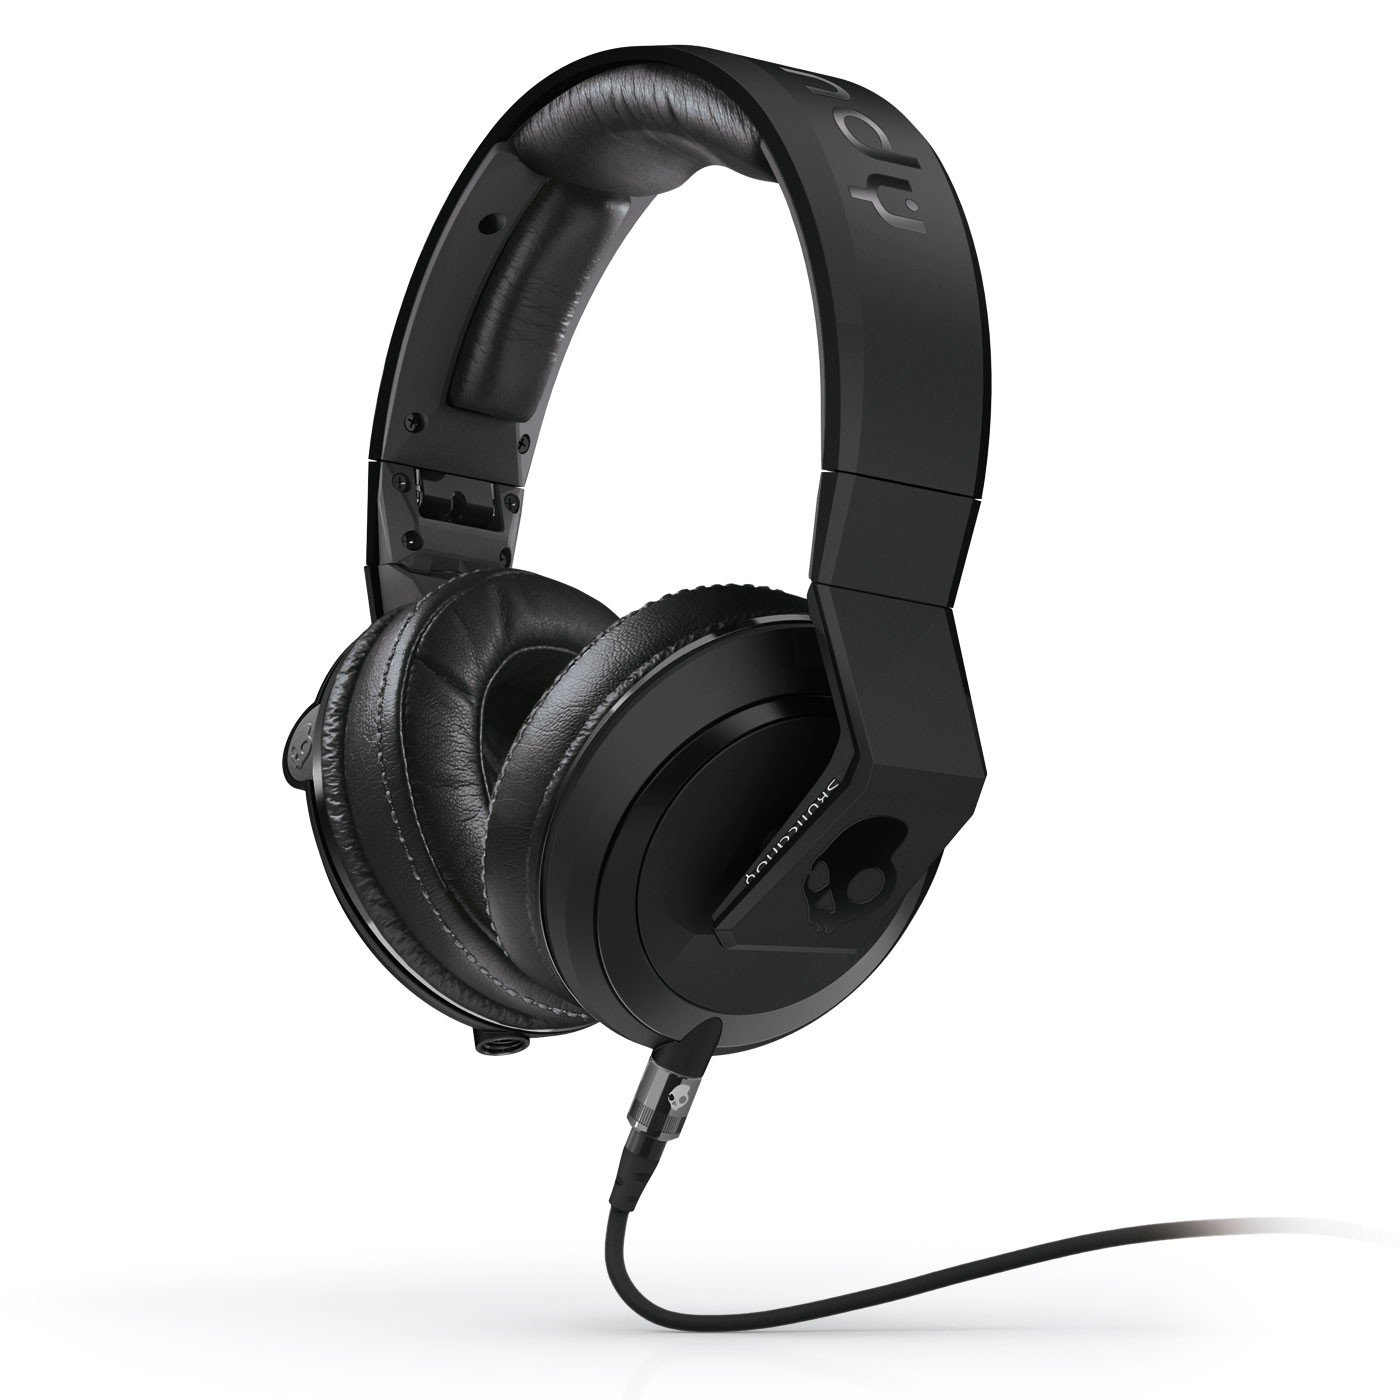 Skullcandy Mix Master Headphones with DJ Capabilities and 3 Button Mic, Matte Black